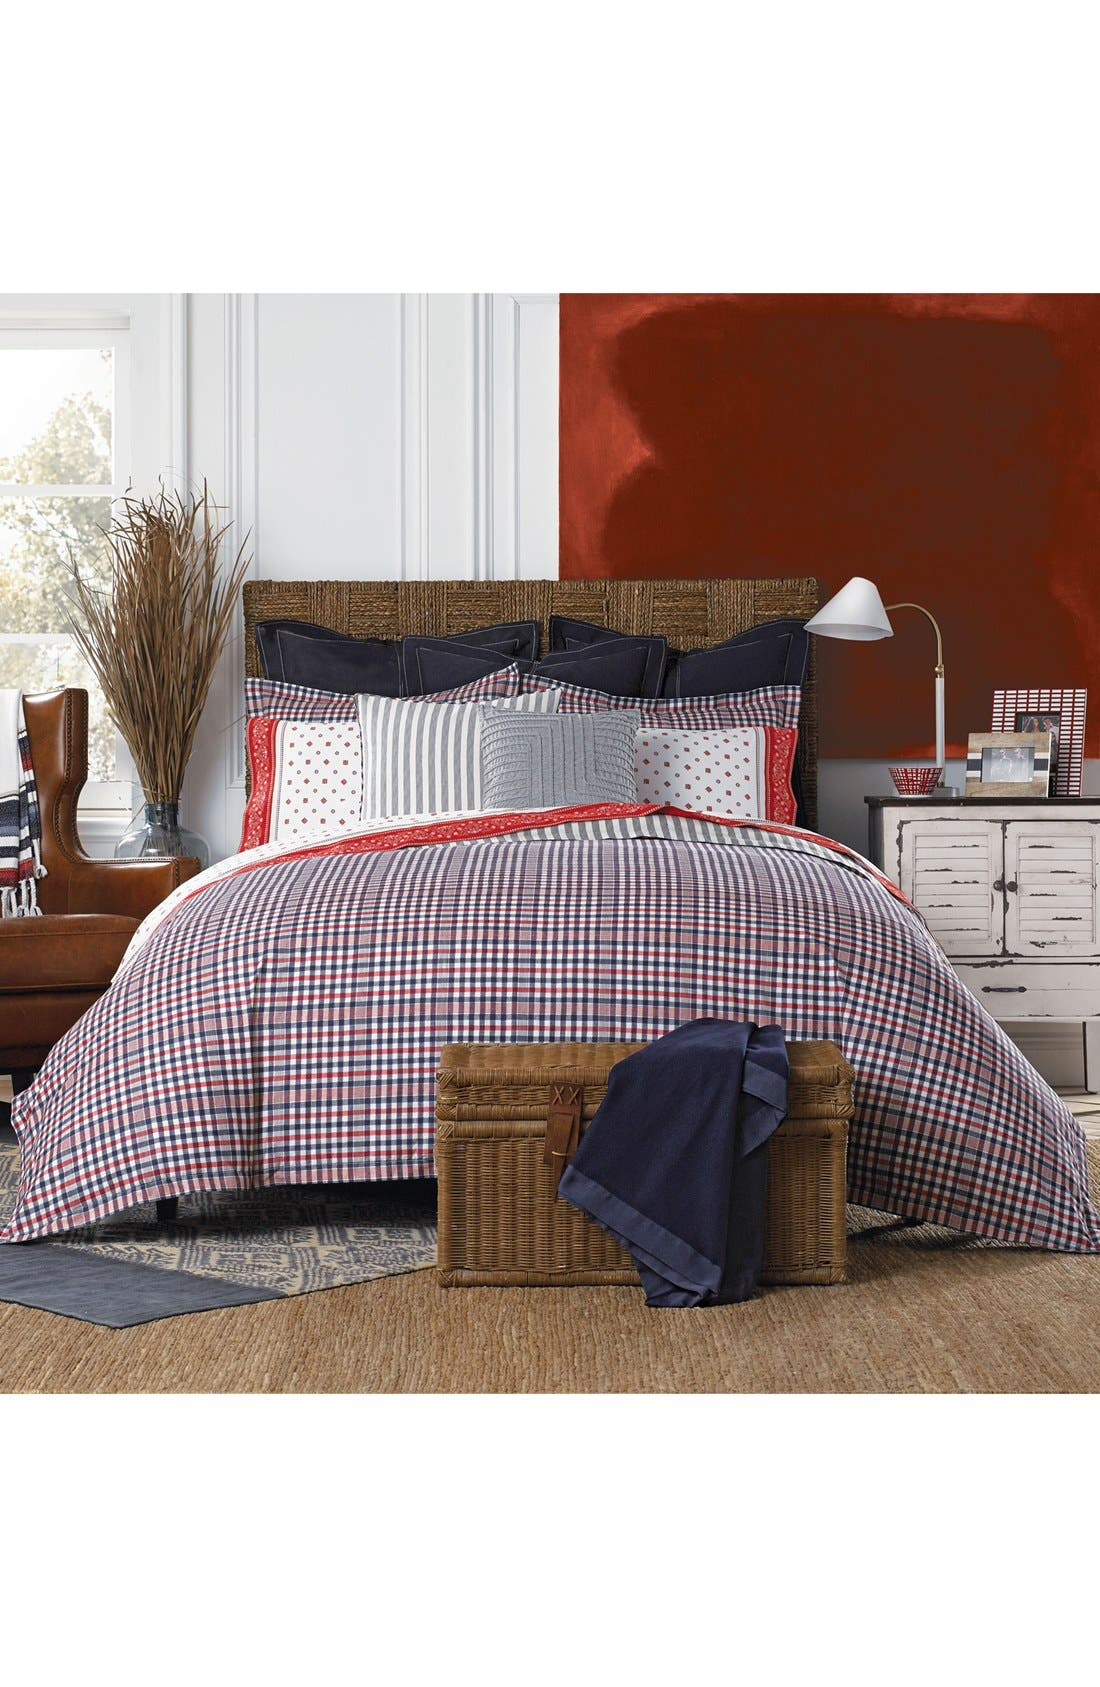 Alternate Image 1 Selected - Tommy Hilfiger Plaid Comforter & Sham Set